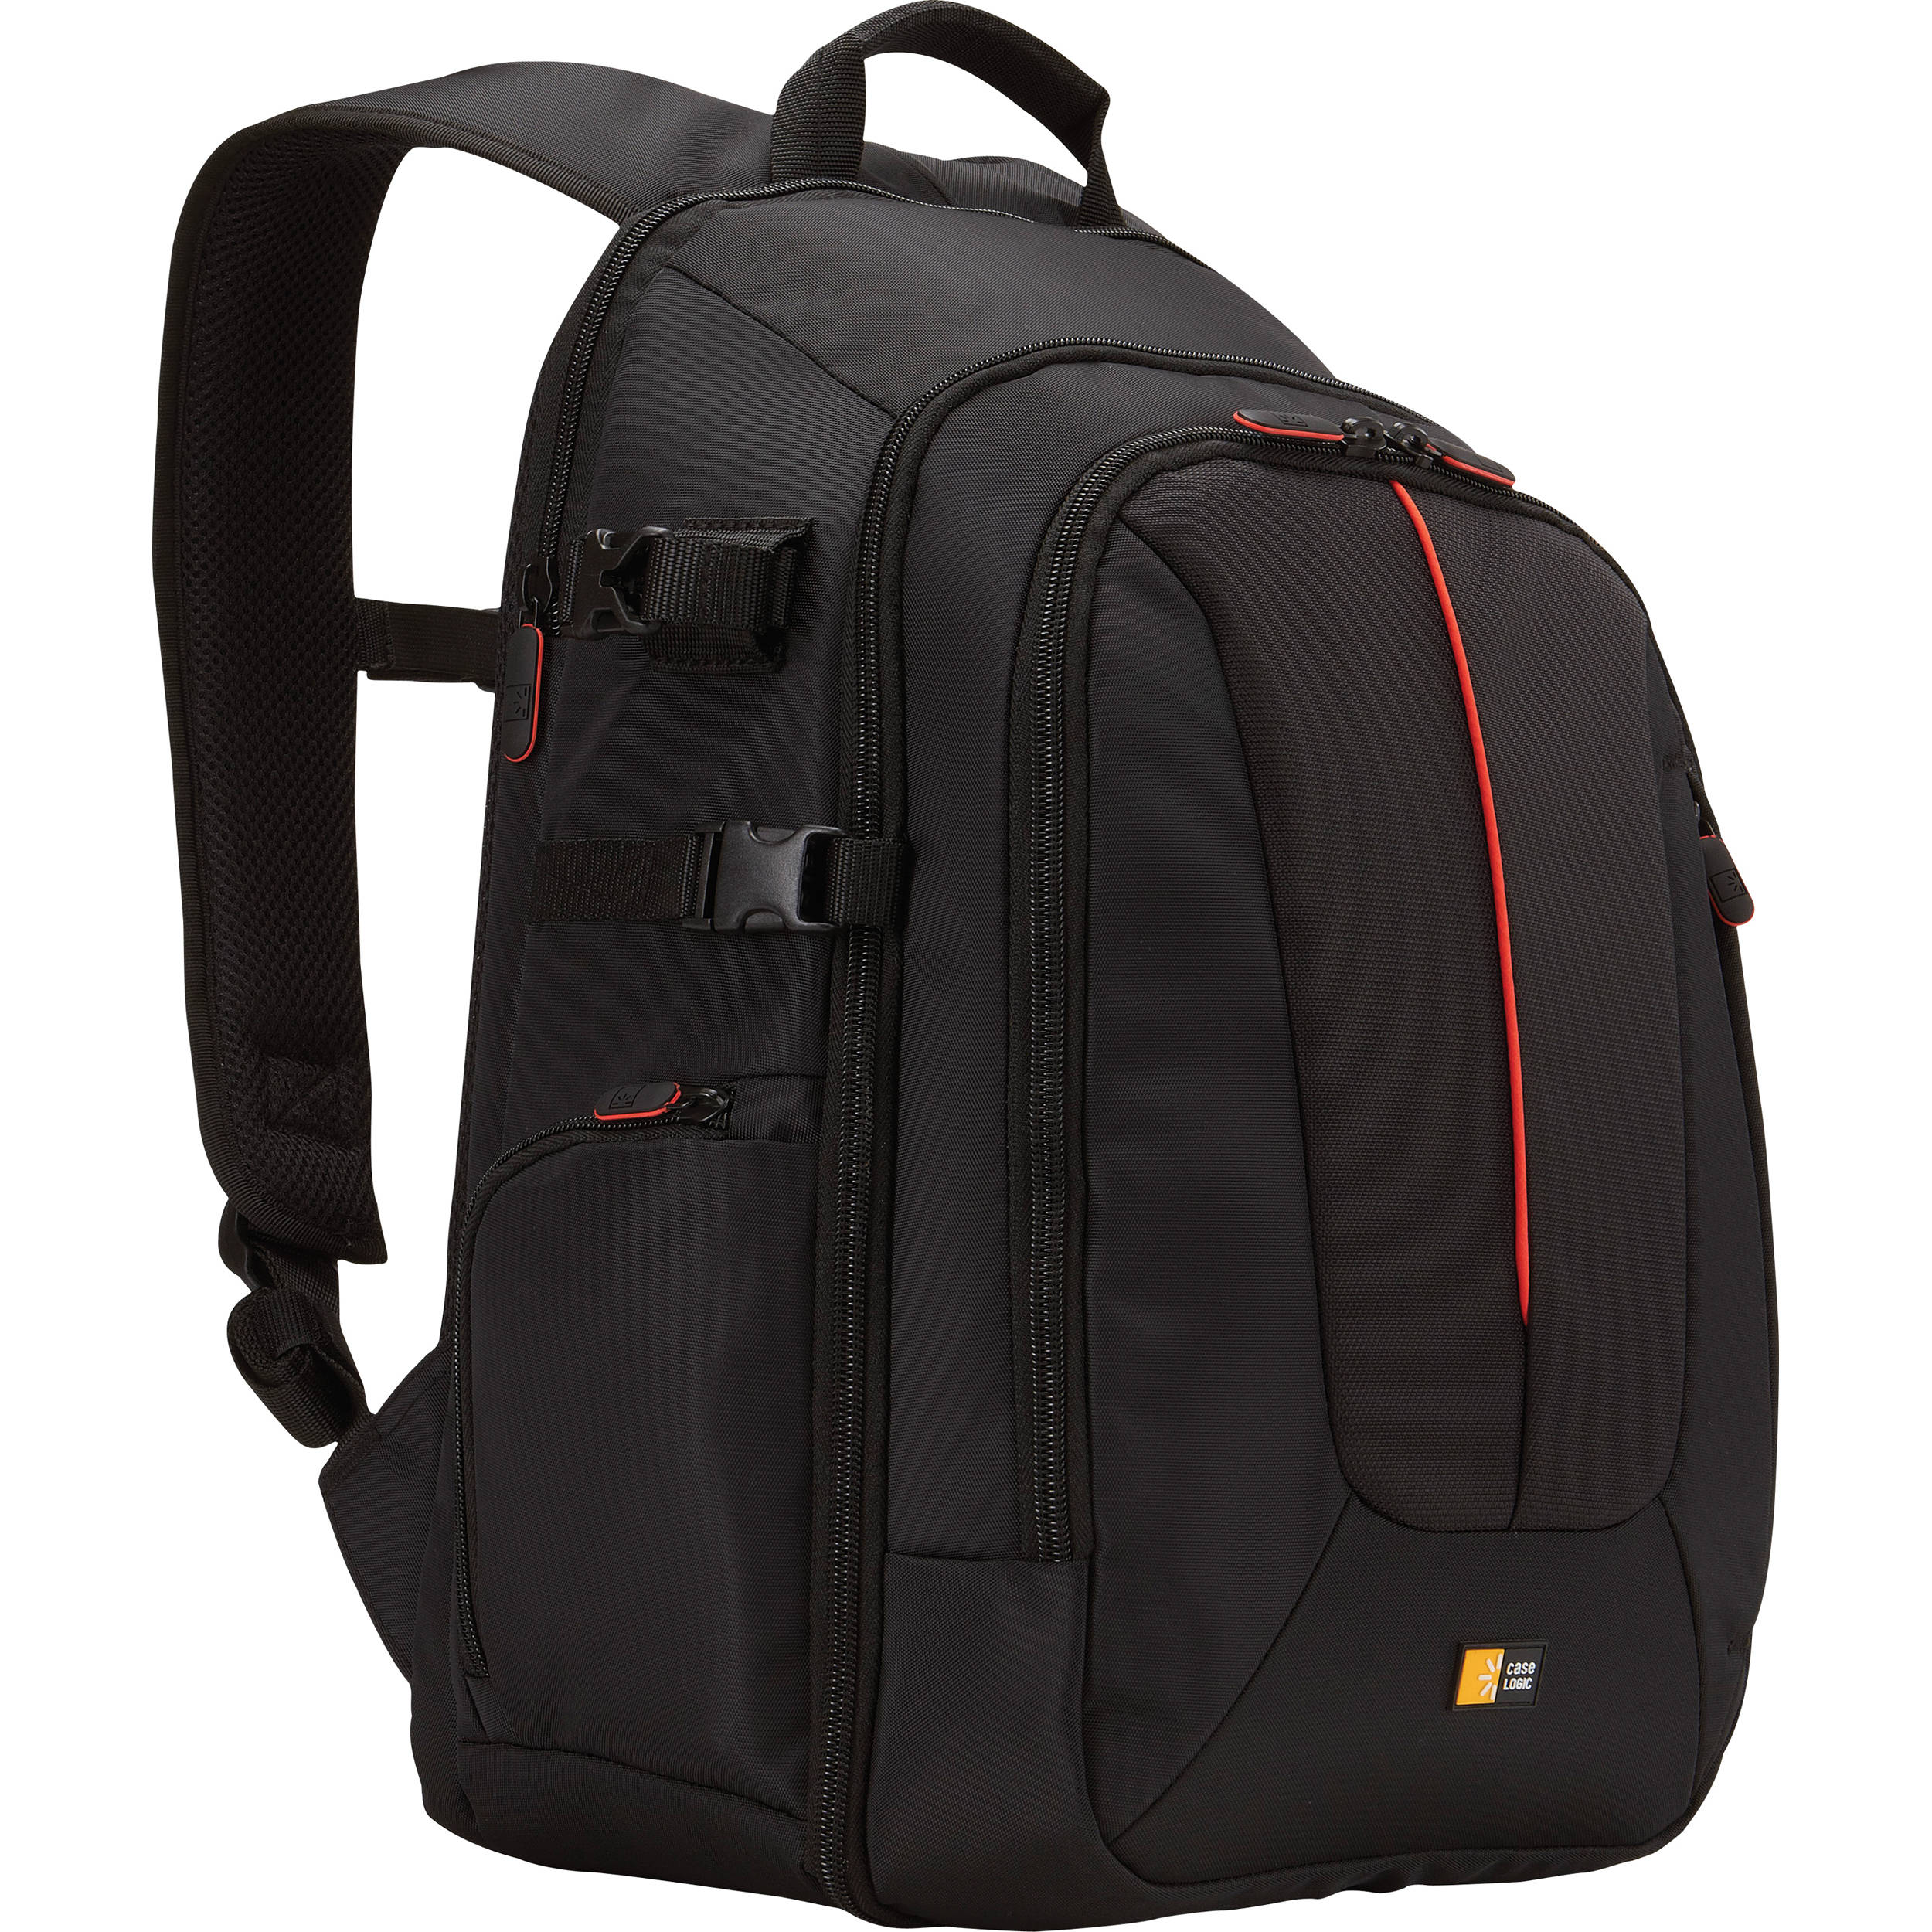 Case Logic DCB-309 SLR Camera Backpack (Black) DCB-309 B&H Photo